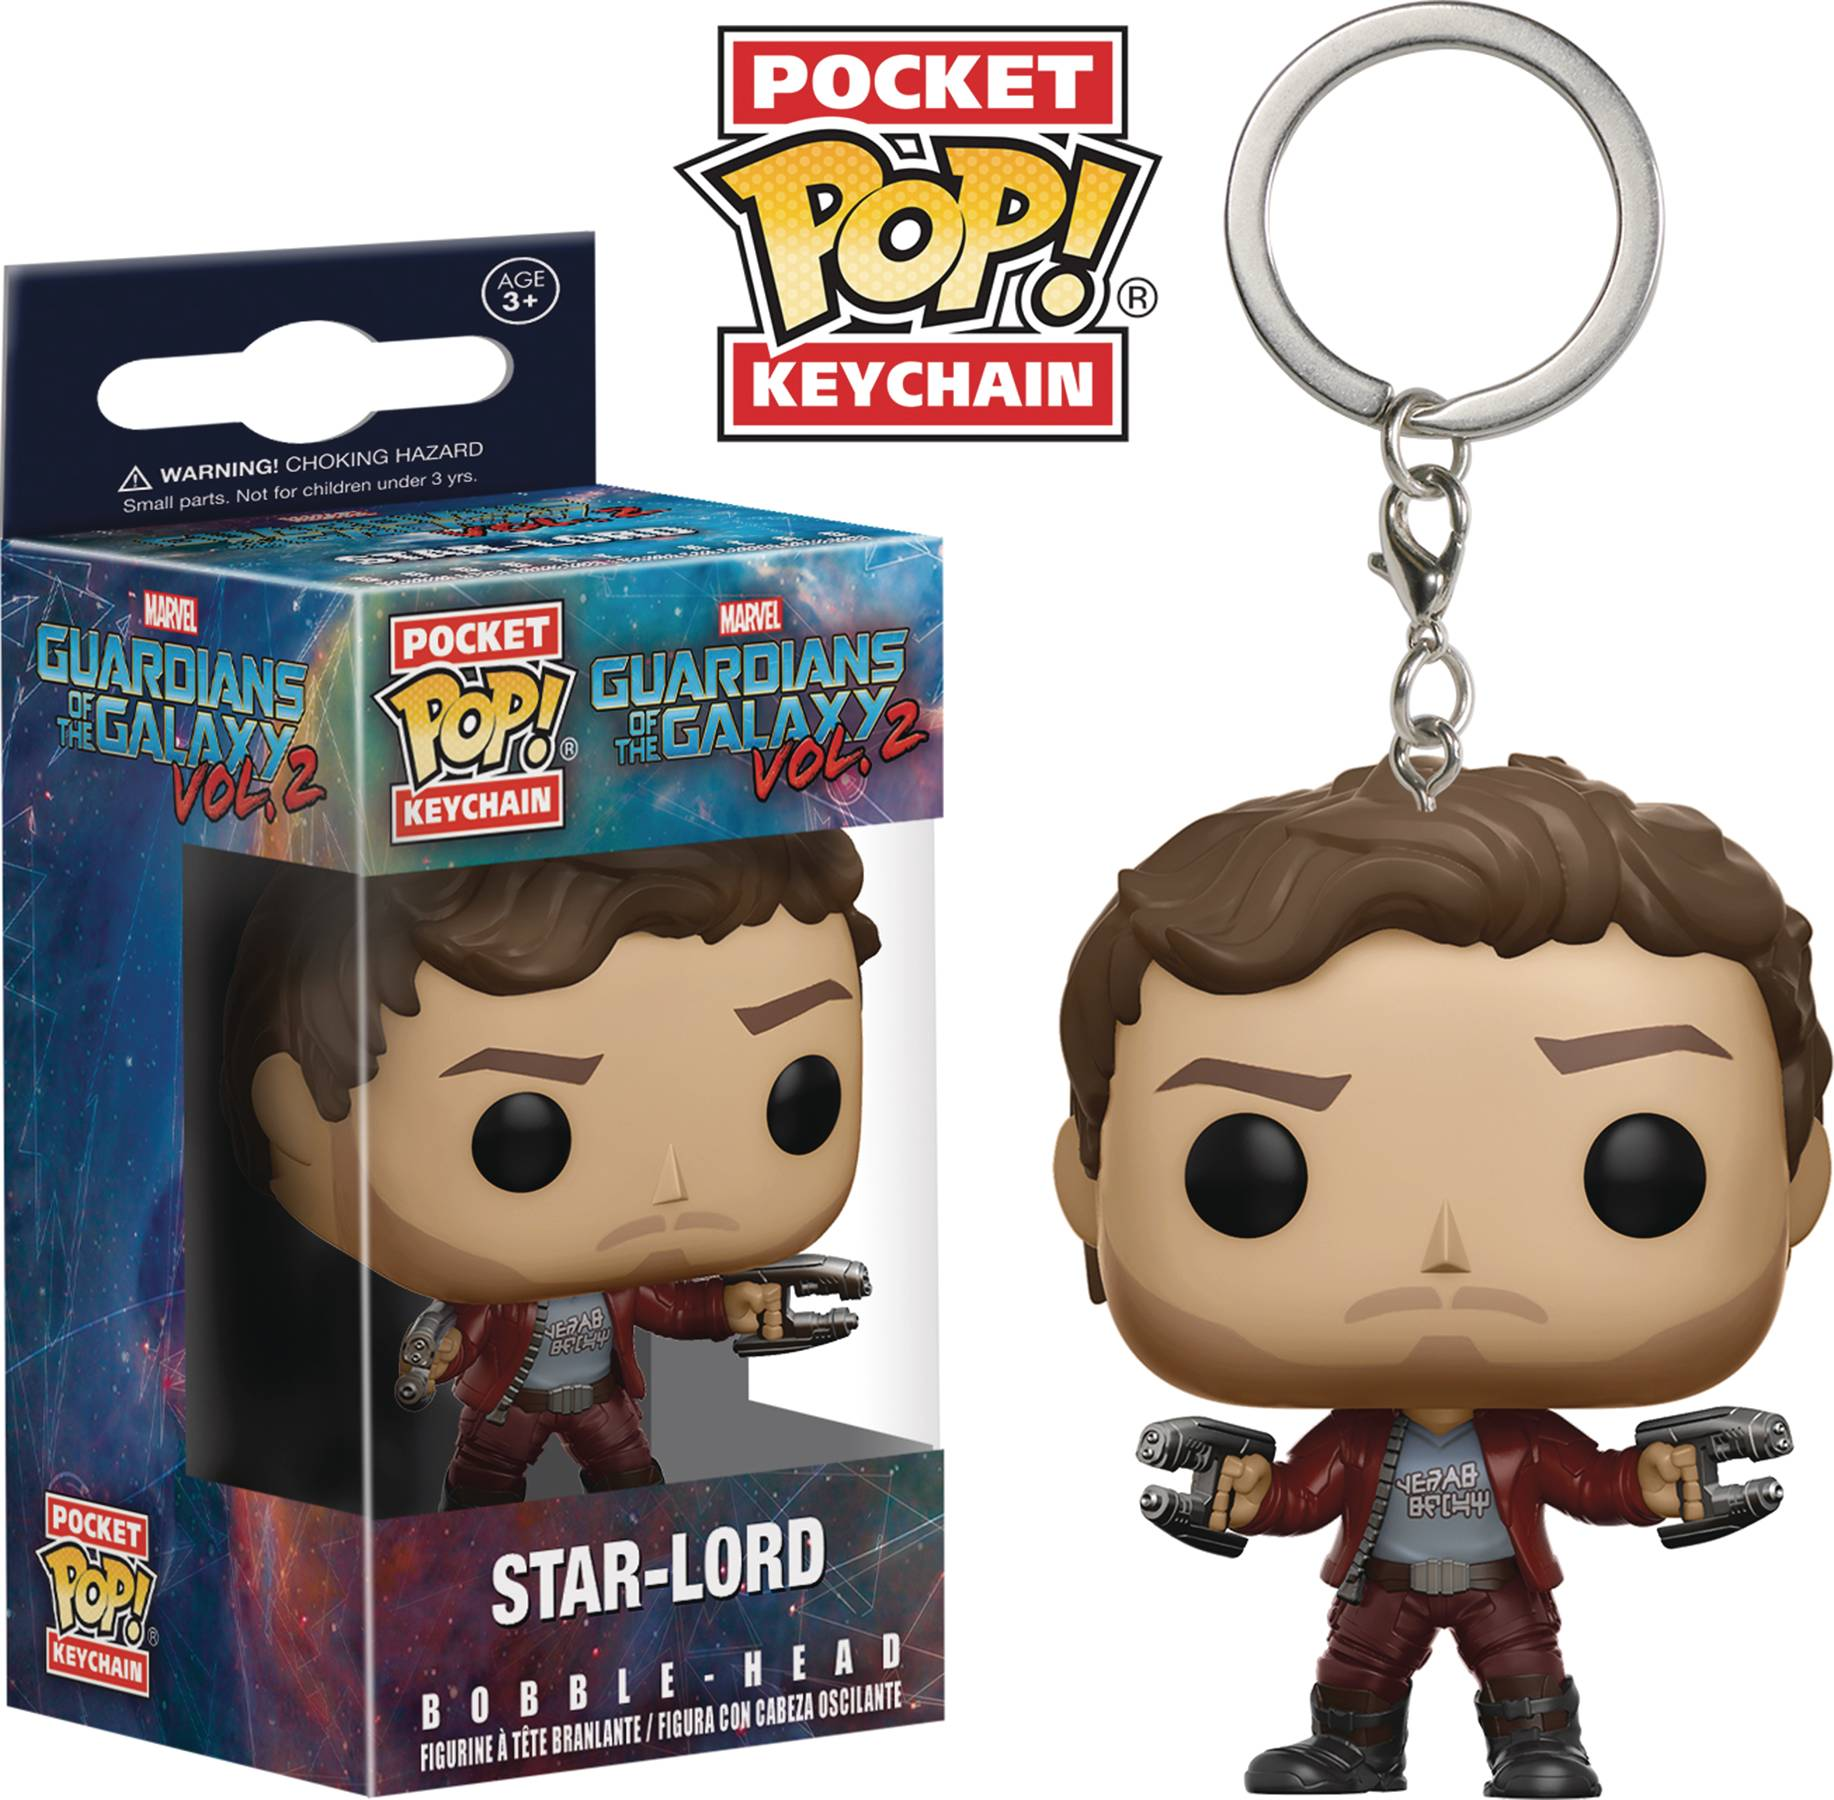 POCKET POP GOTG VOL 2 STAR-LORD FIG KEYCHAIN